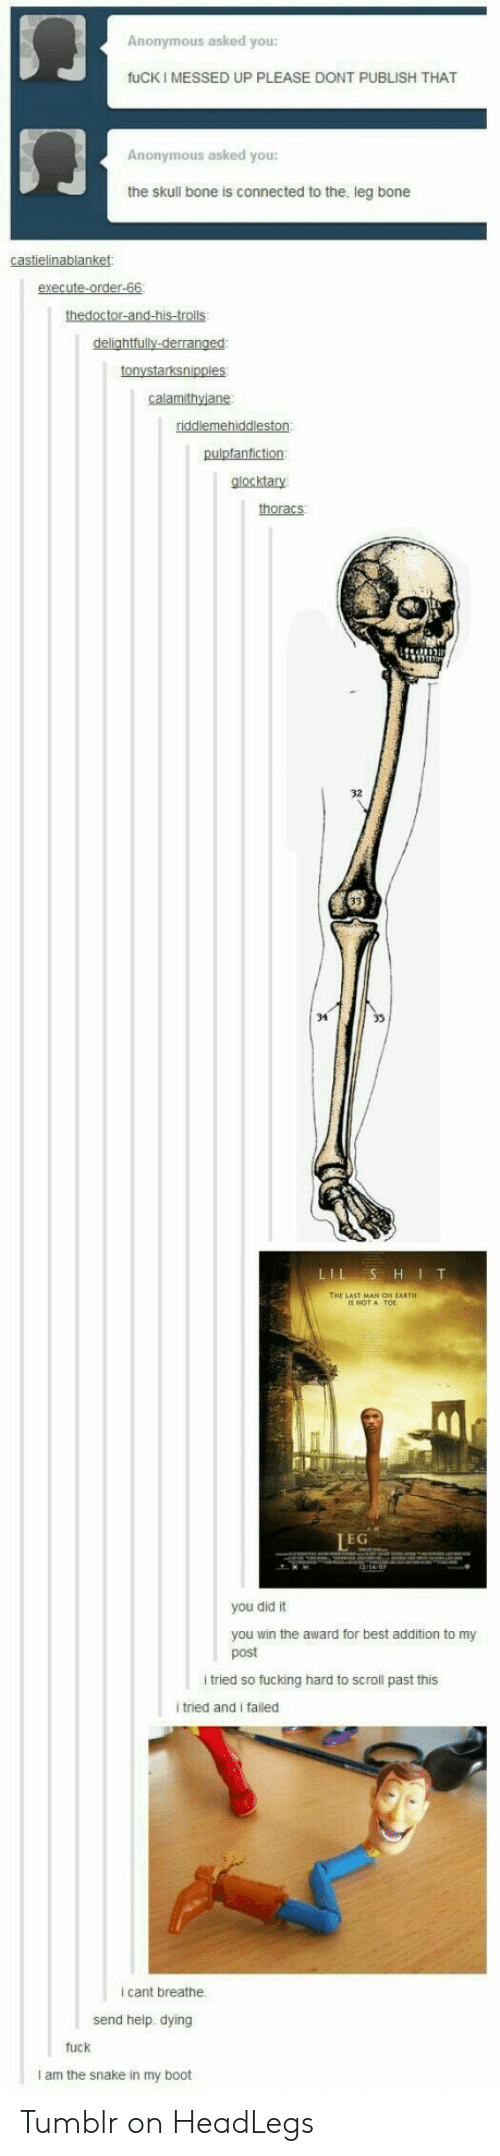 Tumblr On: Anonymous asked you:  fuCK I MESSED UP PLEASE DONT PUBLISH THAT  门  Anonymous asked you:  the skull bone is connected to the, leg bone  glocktary  thoracs  32  34  THE LAST MAN ON EARTH  IS NOT A TOE  EG  you did it  you win the award for best addition to my  post  i tried so fucking hard to scroll past this  tried and i failed  i cant breathe  send help. dying  fuck  I am the snake in my boot Tumblr on HeadLegs